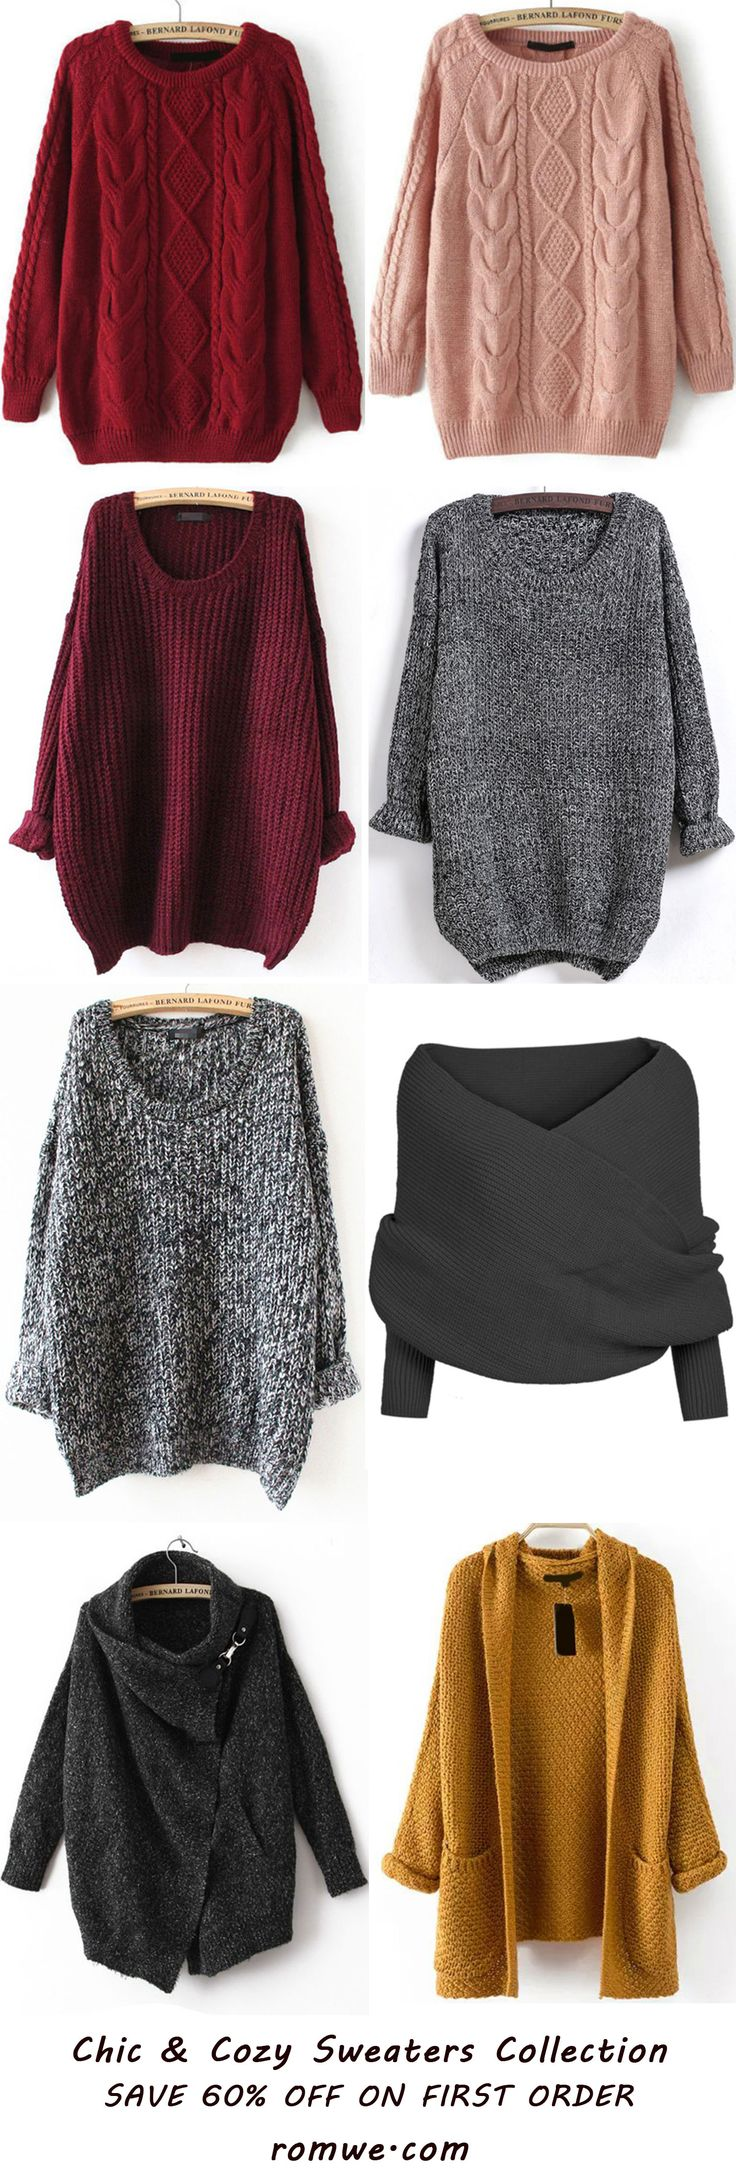 Sweaters Collection 2016 - romwe.com